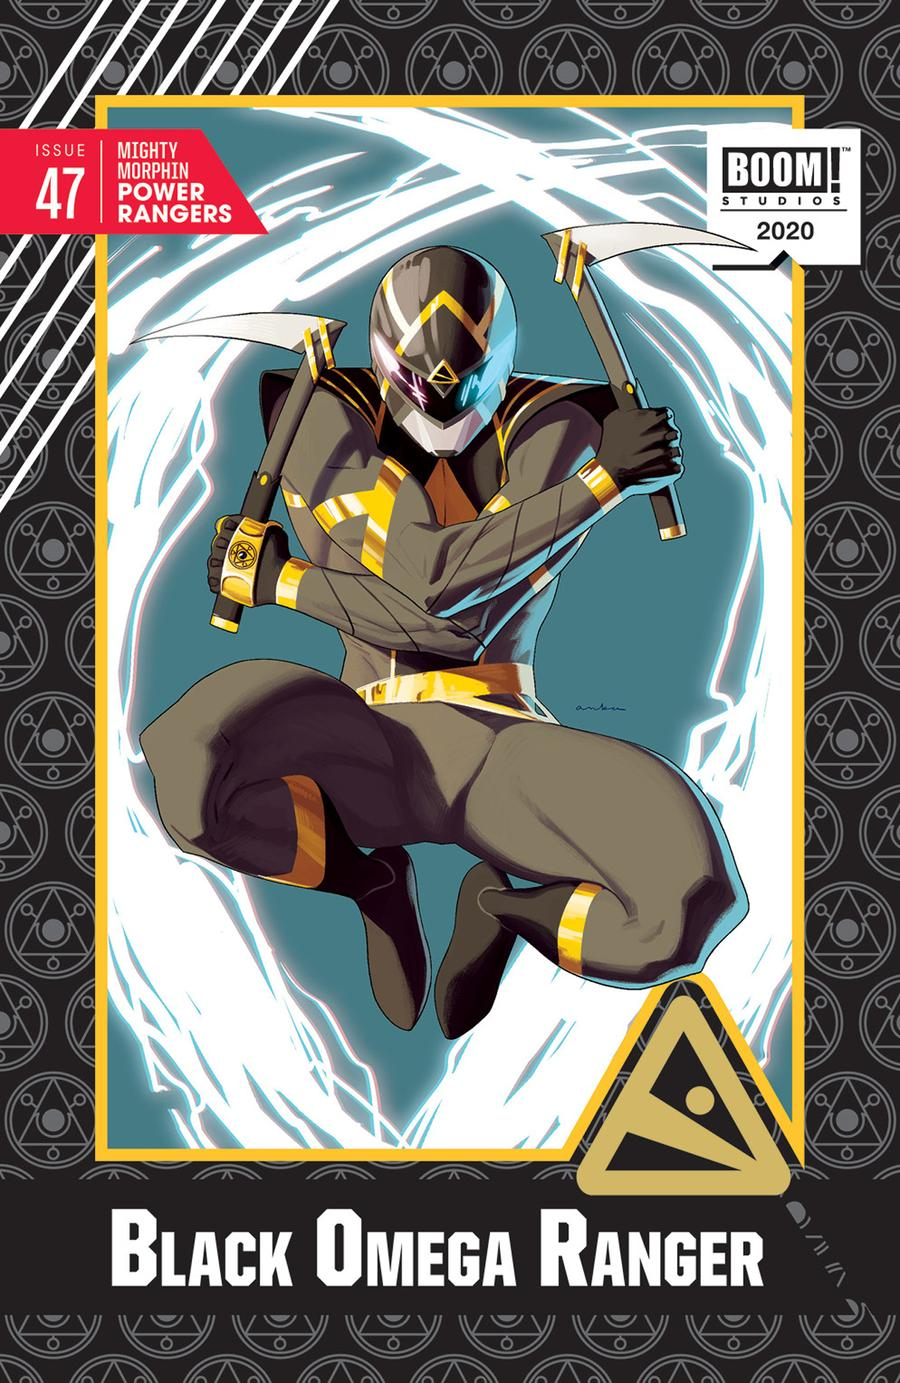 Mighty Morphin Power Rangers (BOOM Studios) #47 Cover D Incentive Kris Anka Variant Cover